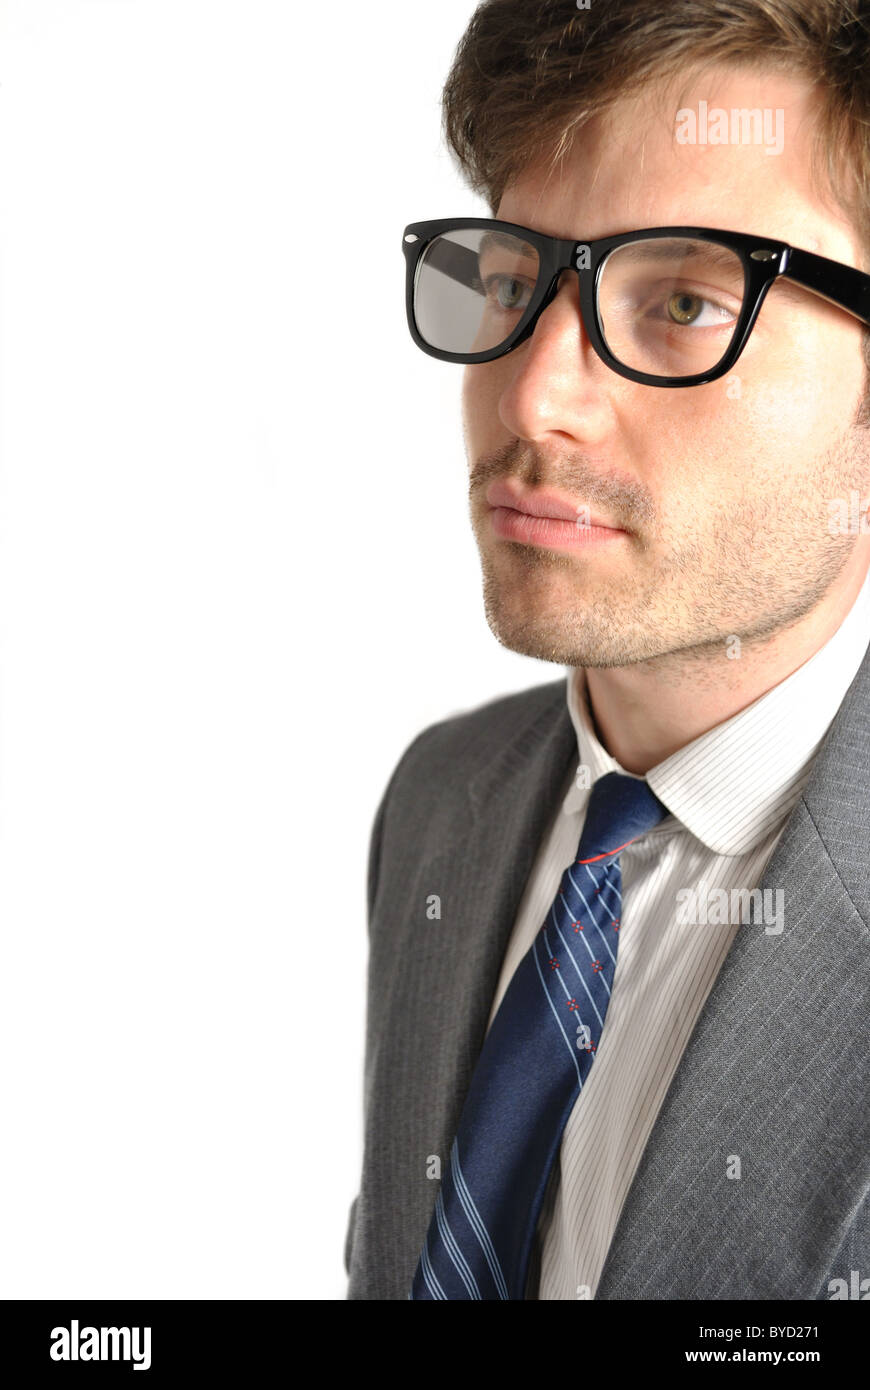 Portrait of a man with glasses. - Stock Image